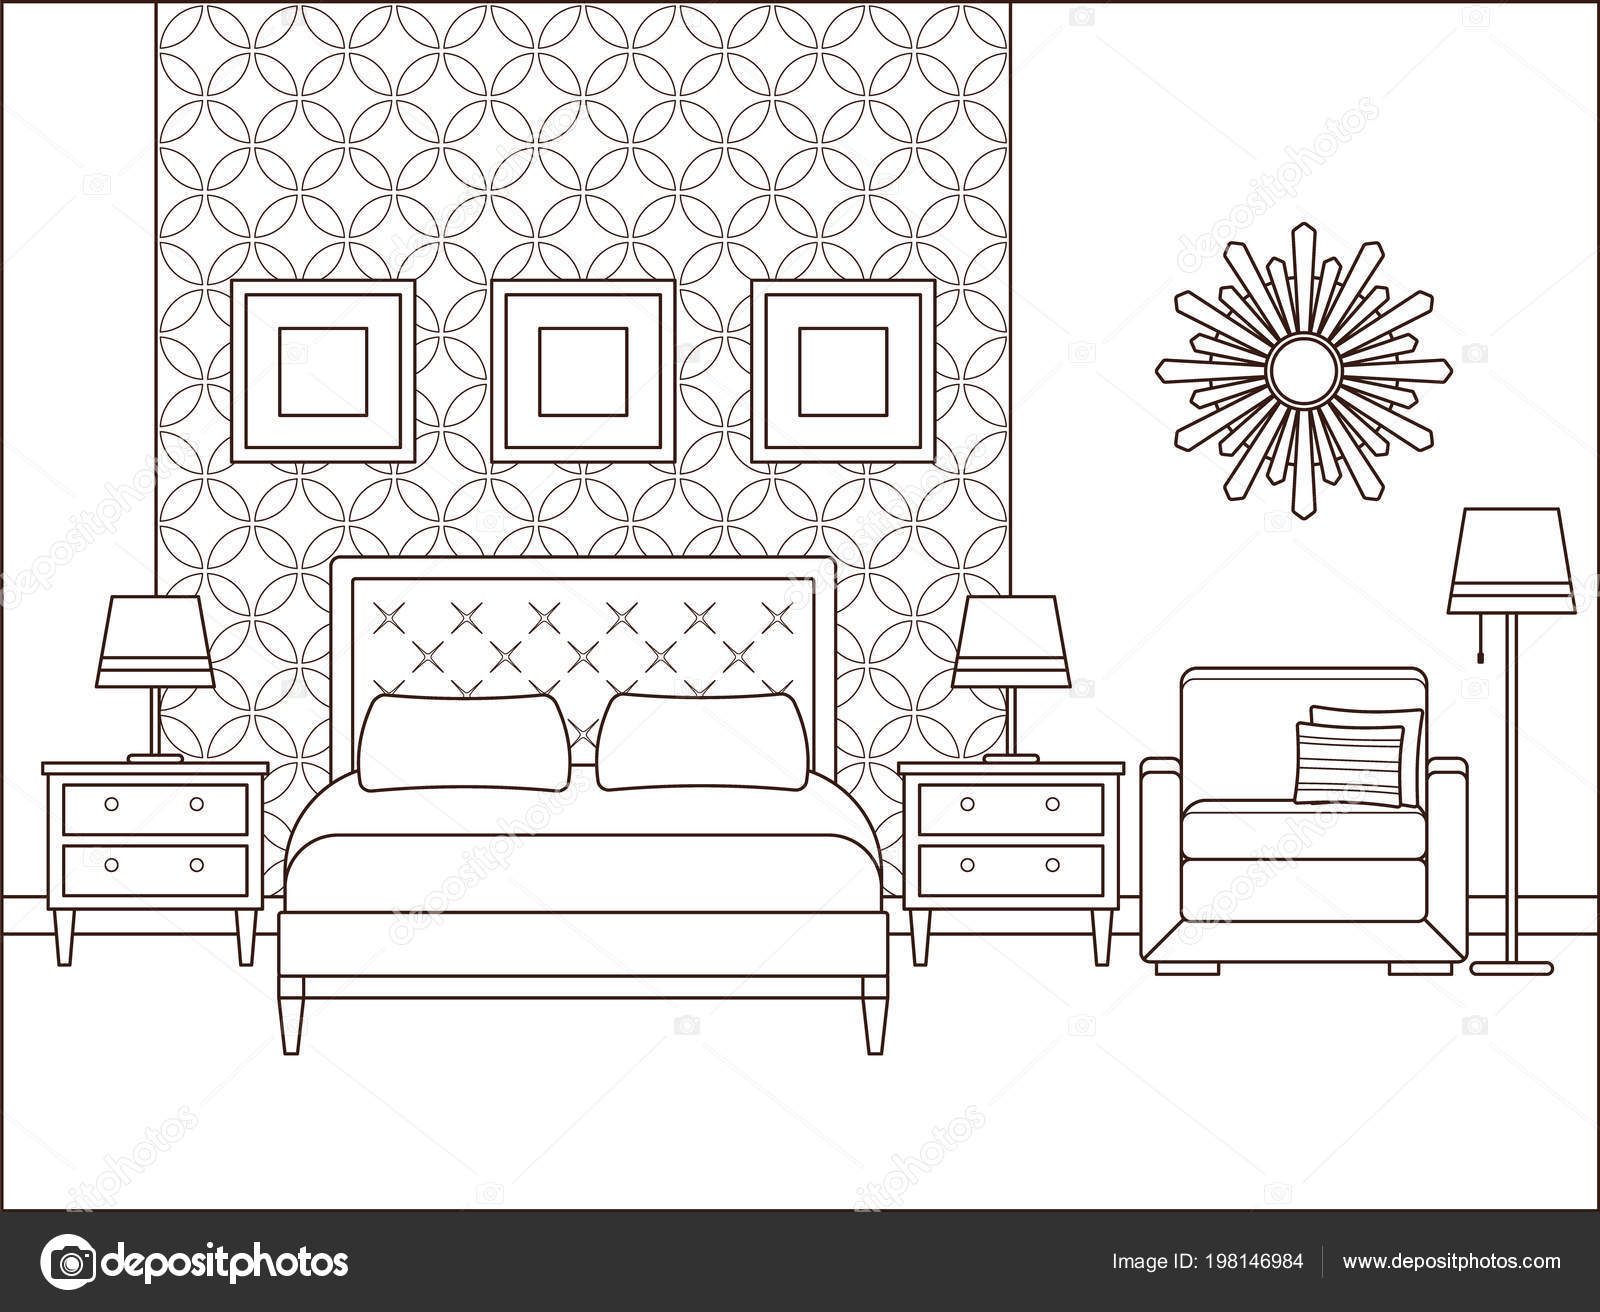 Bedroom Interior Vector Hotel Room Outline Retro Home Space